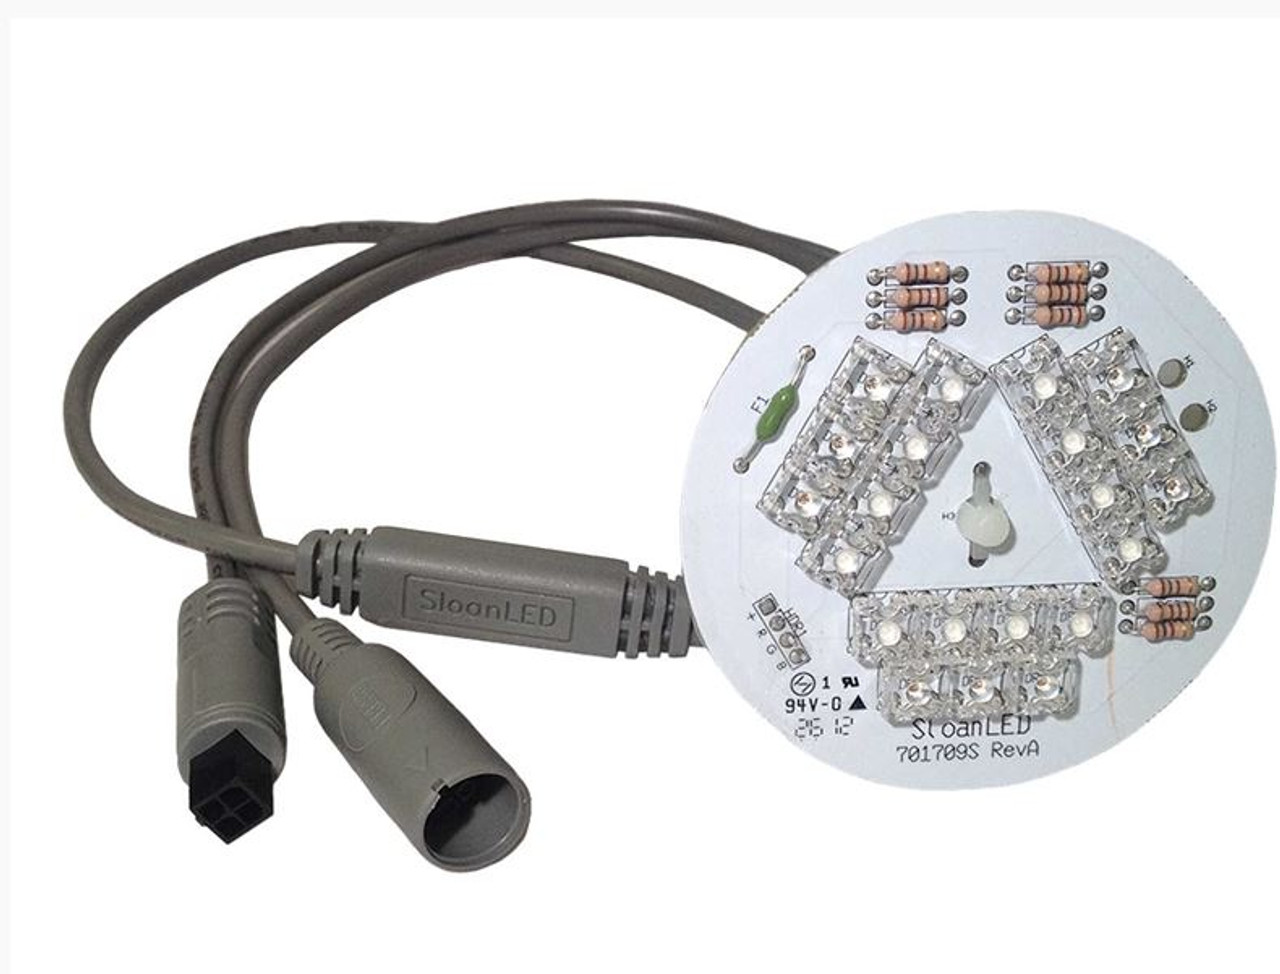 Sloan LED spa hot tub LiquaLED Controller Control 40 701678-DLO for Daisy chain